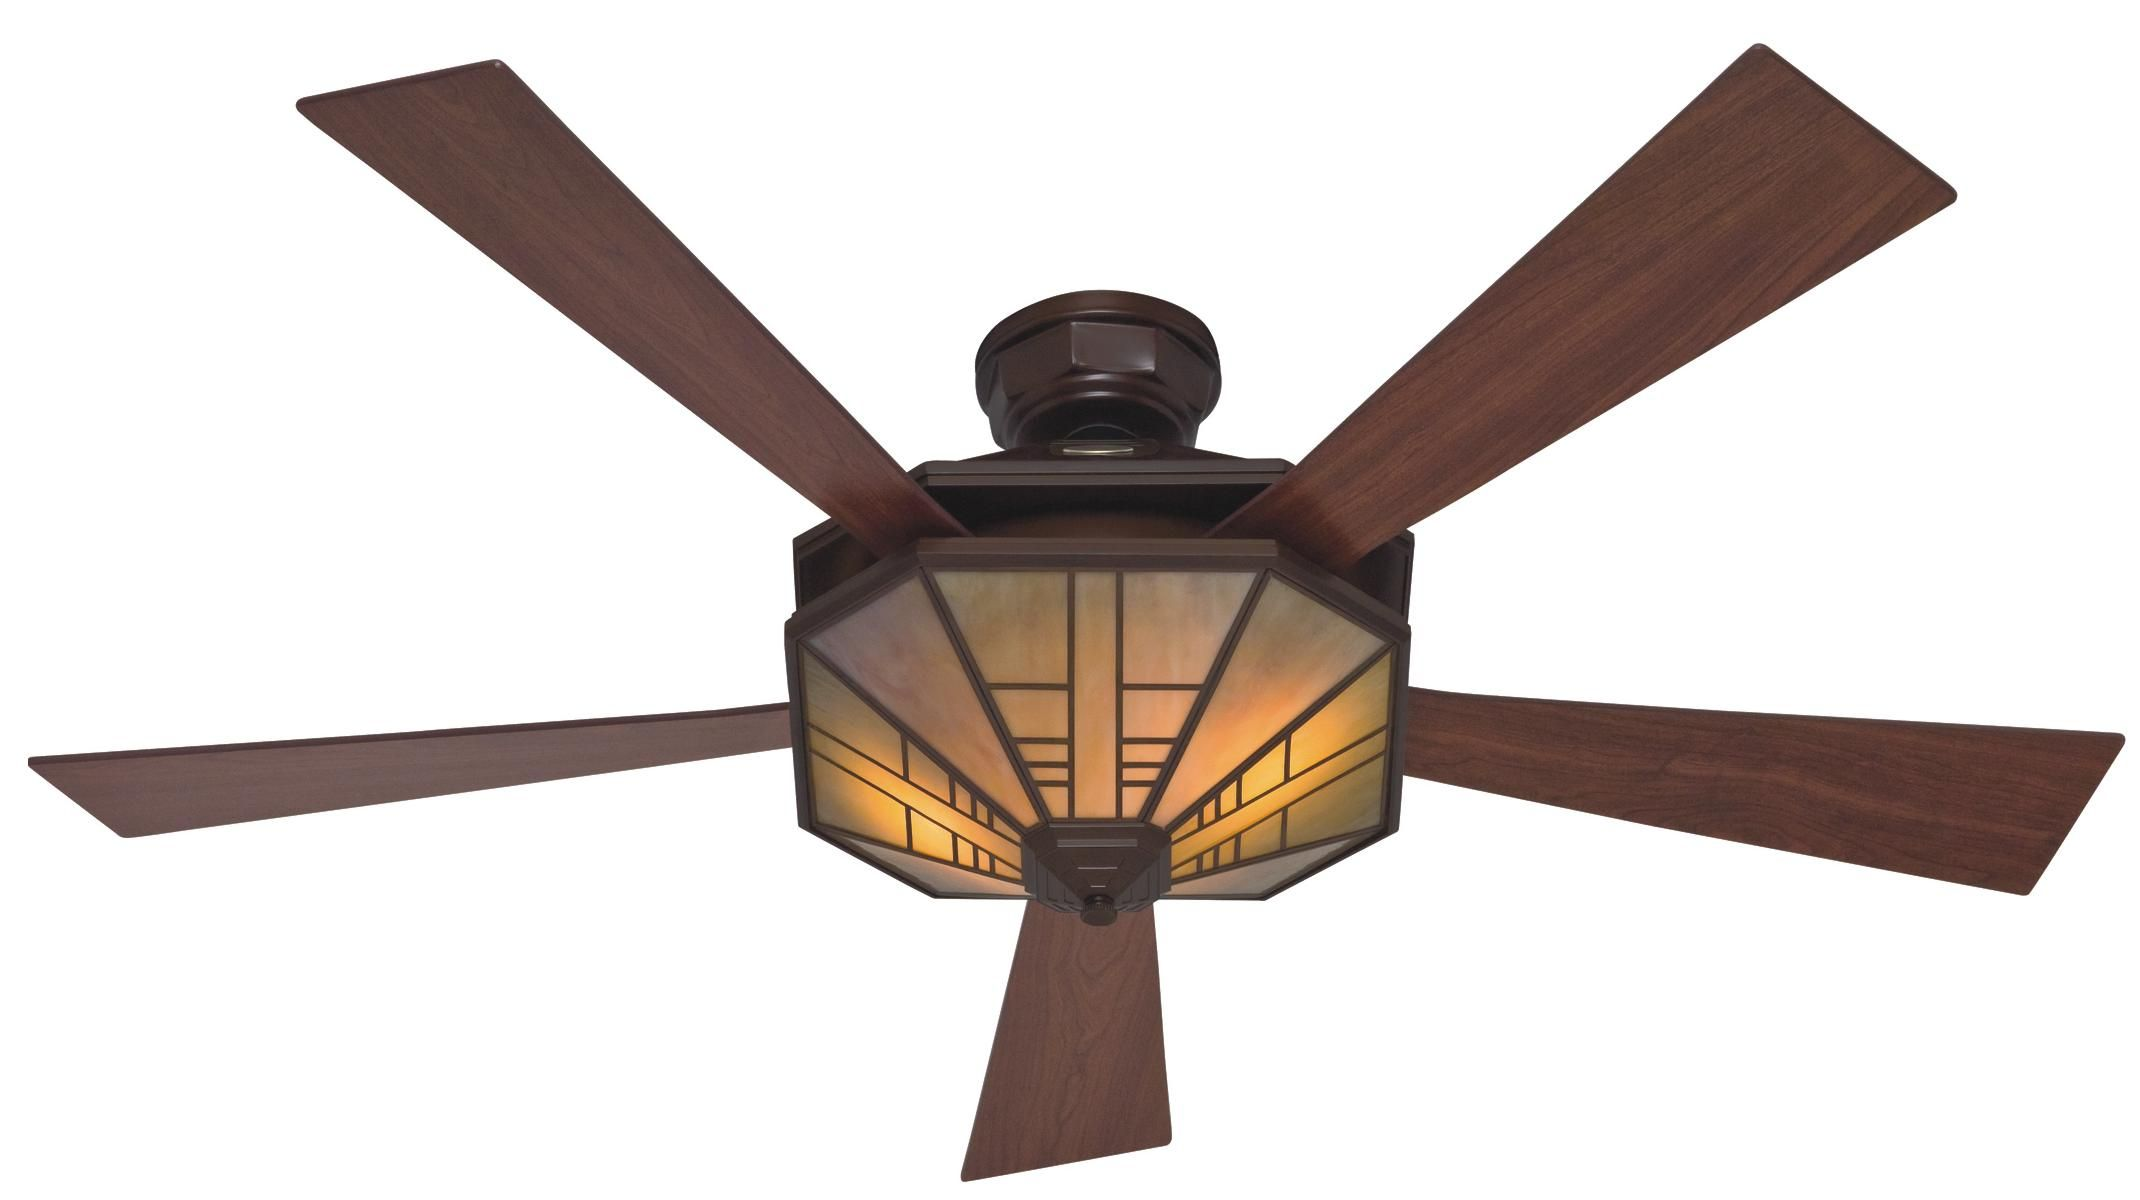 ceilings remote hunter refundable for ceiling fan fans india lighting with best vaulted outdoor